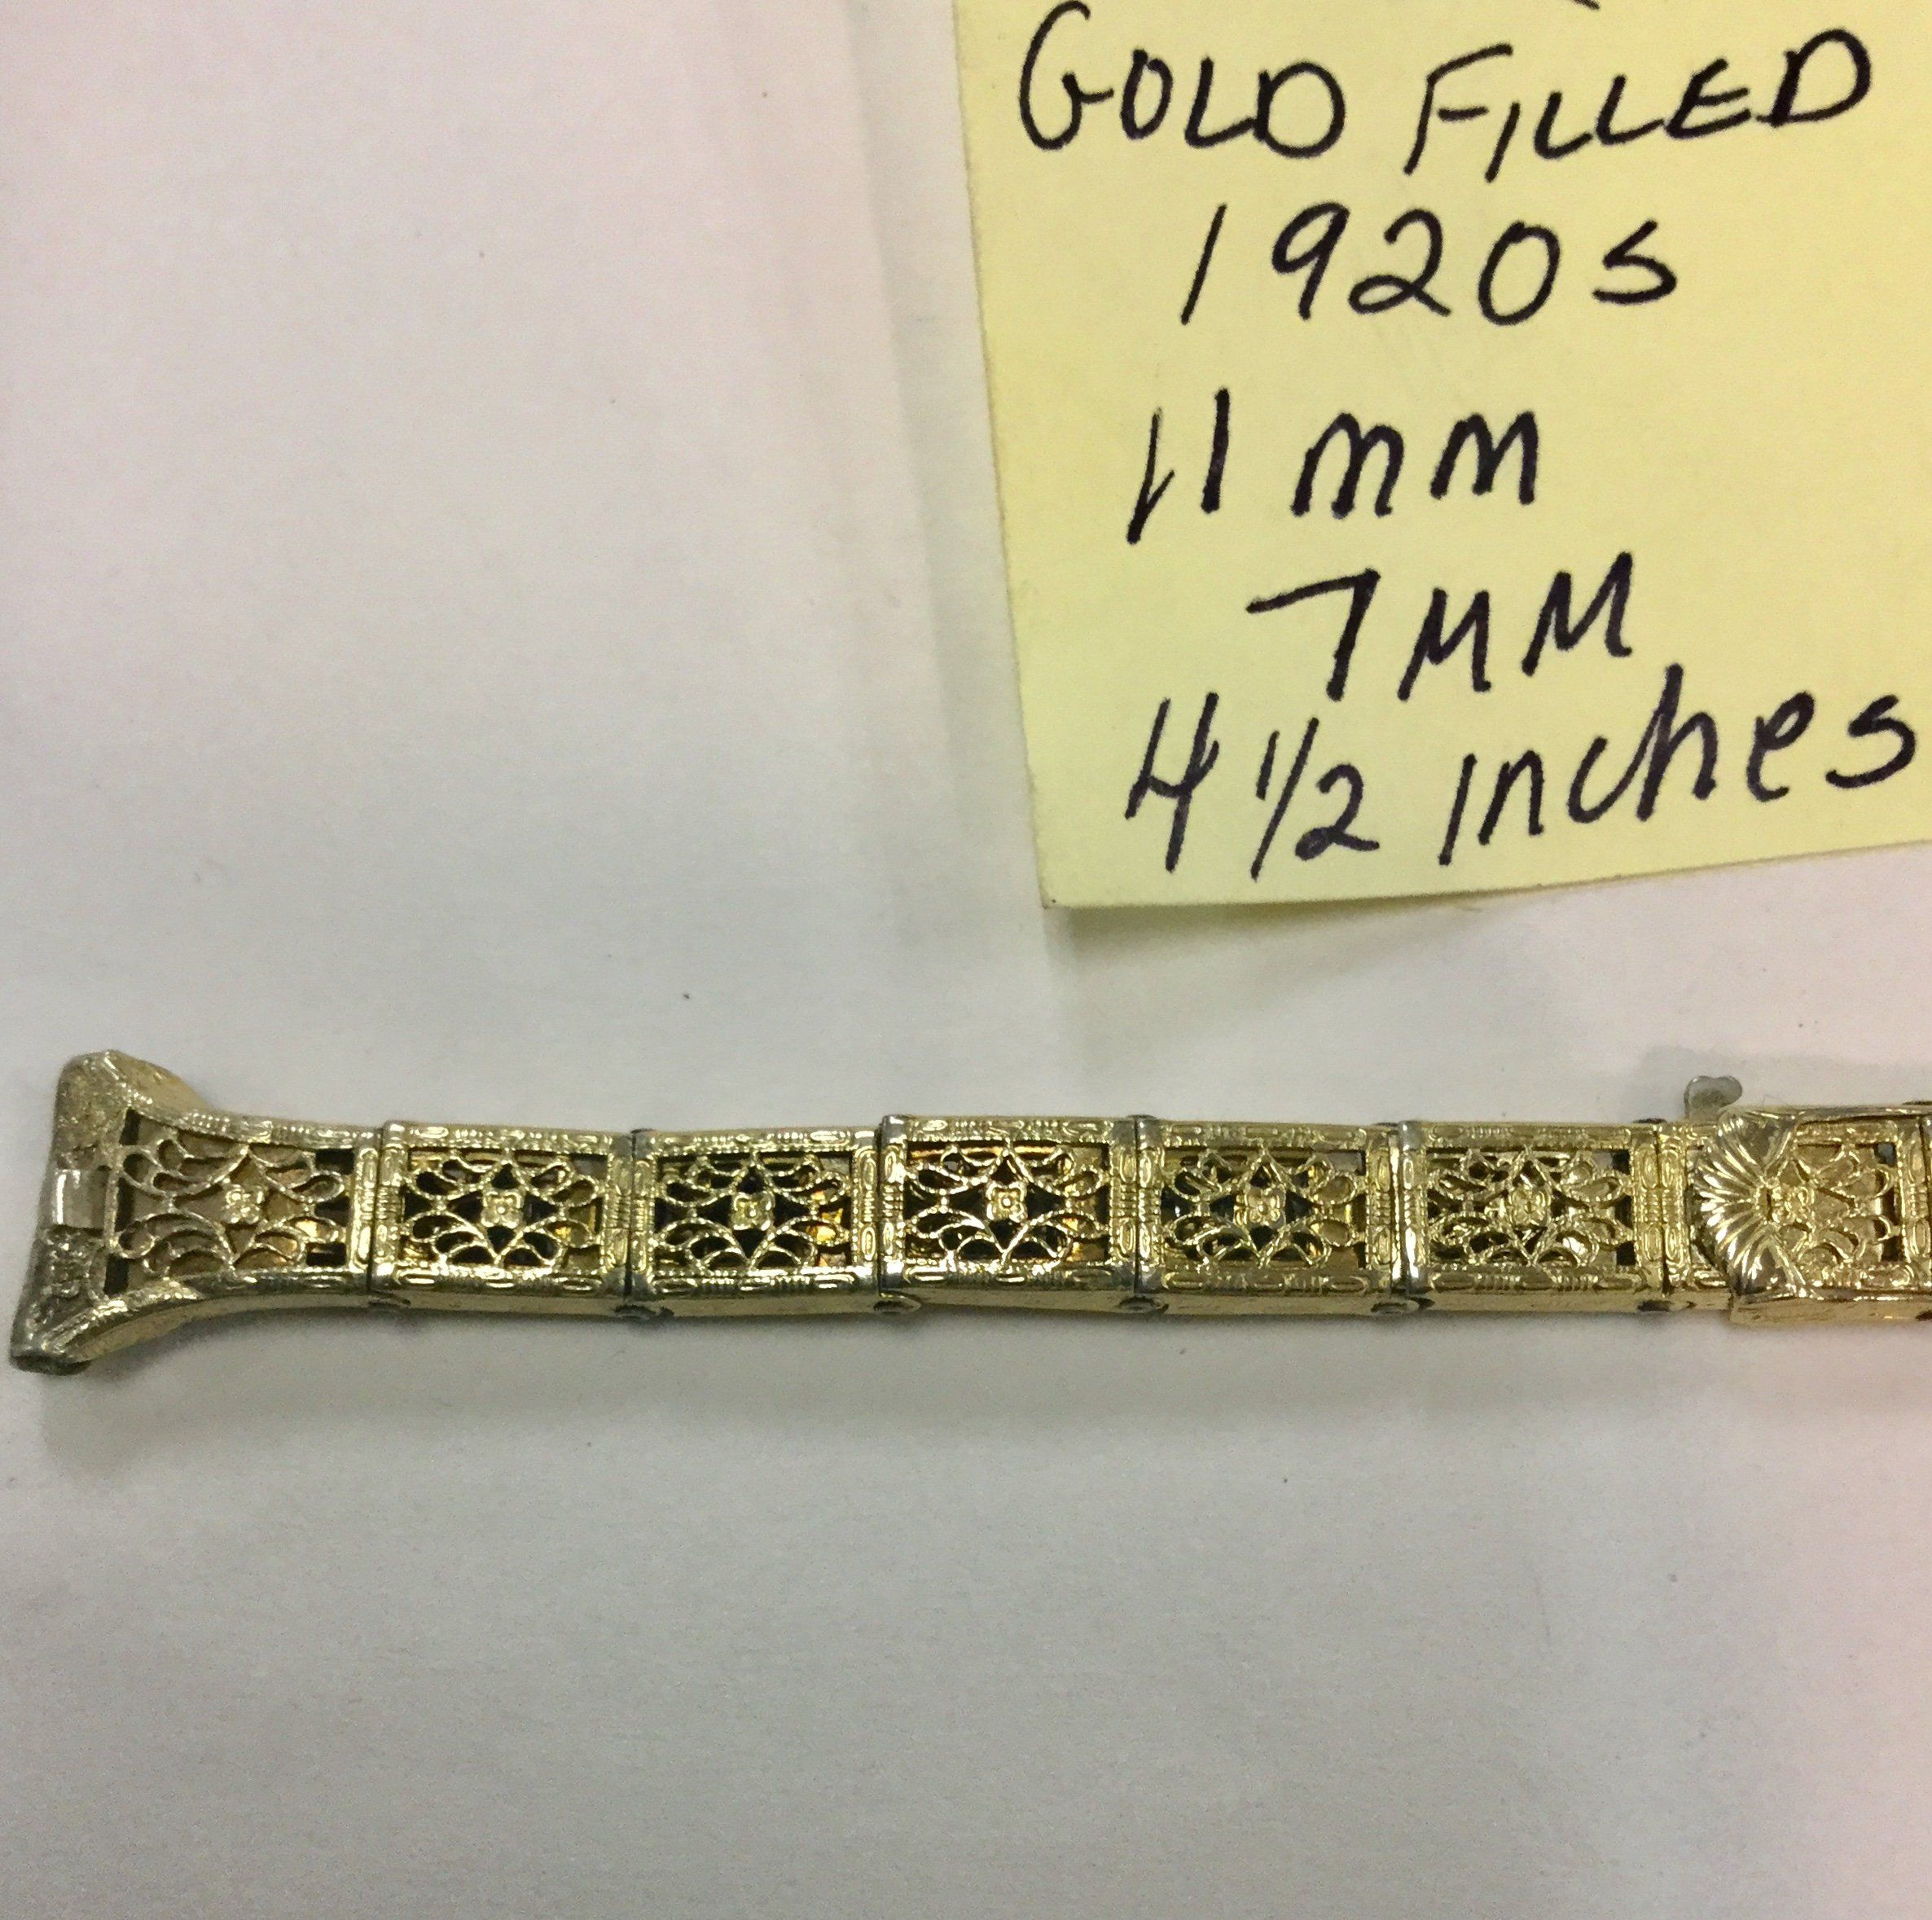 Excited To Share The Latest Addition To My Etsy Shop 1920s Anne Louise 1 10 12k Gold Filled Lace Watch Band 11mm Ends 4 Watch Bands Vintage Band Gold Filled